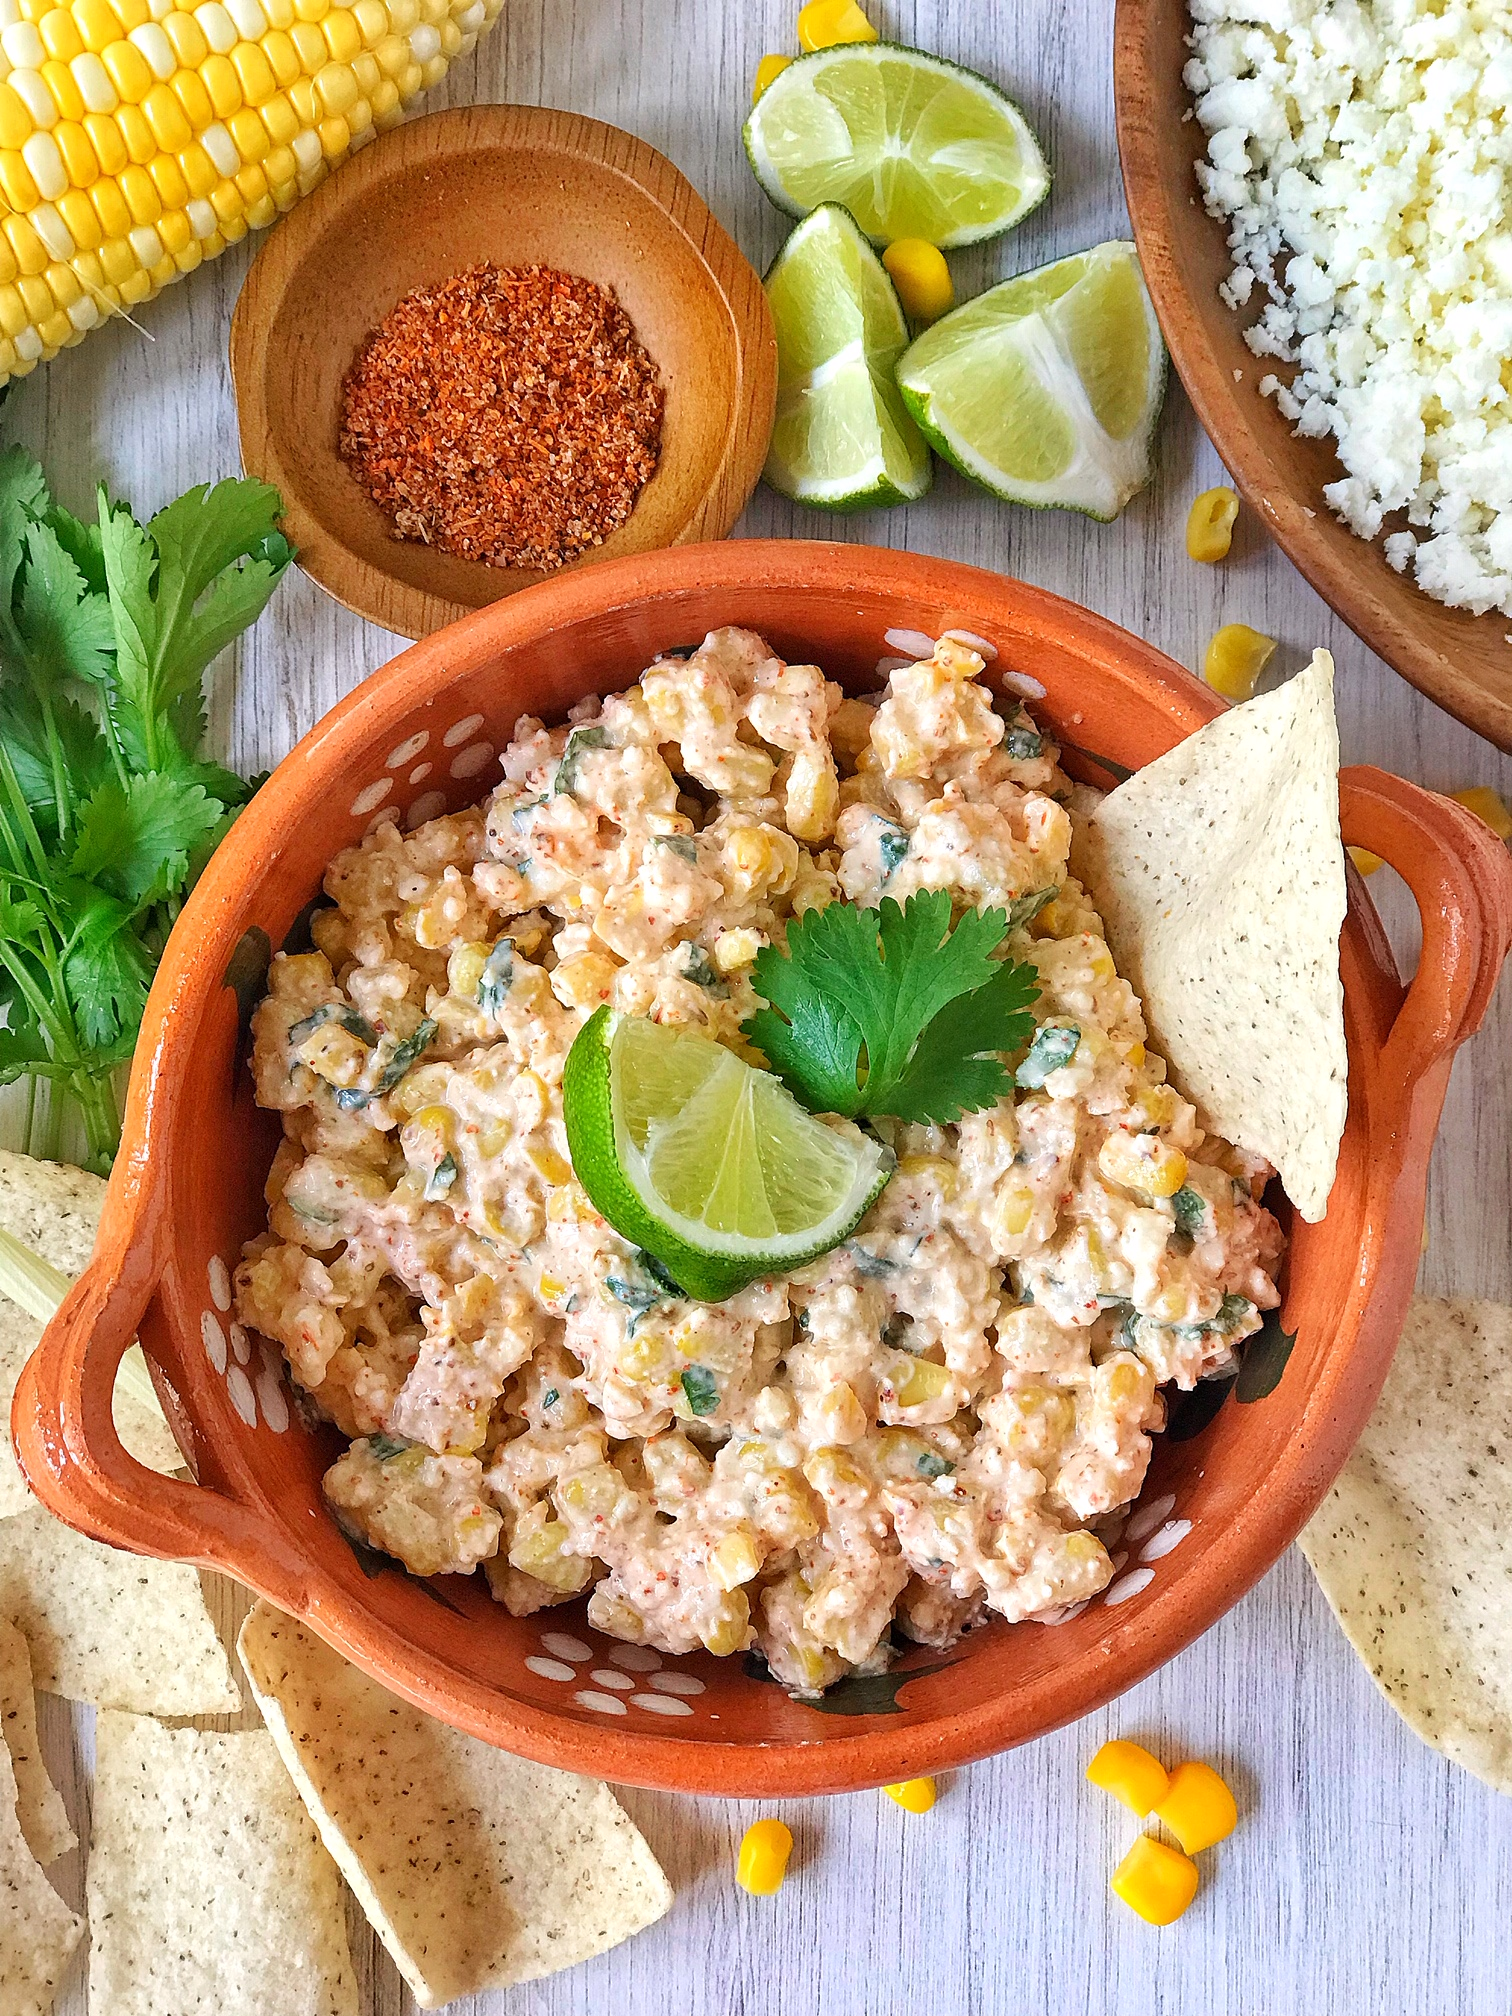 Bowl of Mexican street corn dip garnished with lime and cilantro, tortilla chip in dip. Corn, limes, crumbled cheese, and tortilla chips in picture.